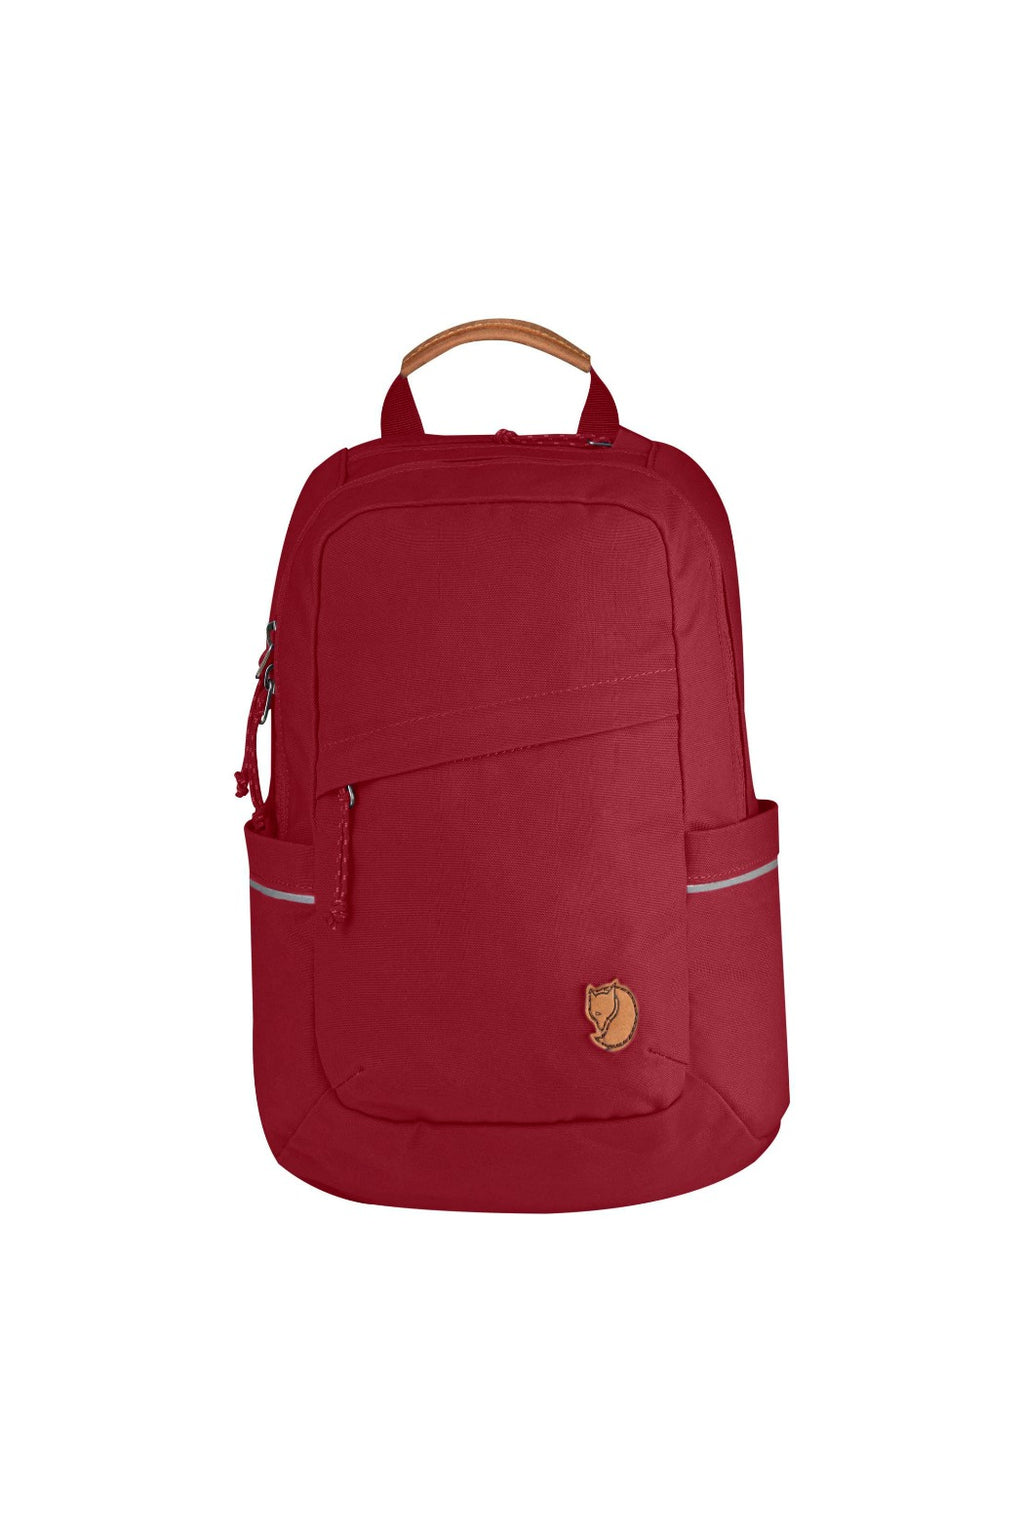 Fjällräven Raven Mini Backpack - Redwood